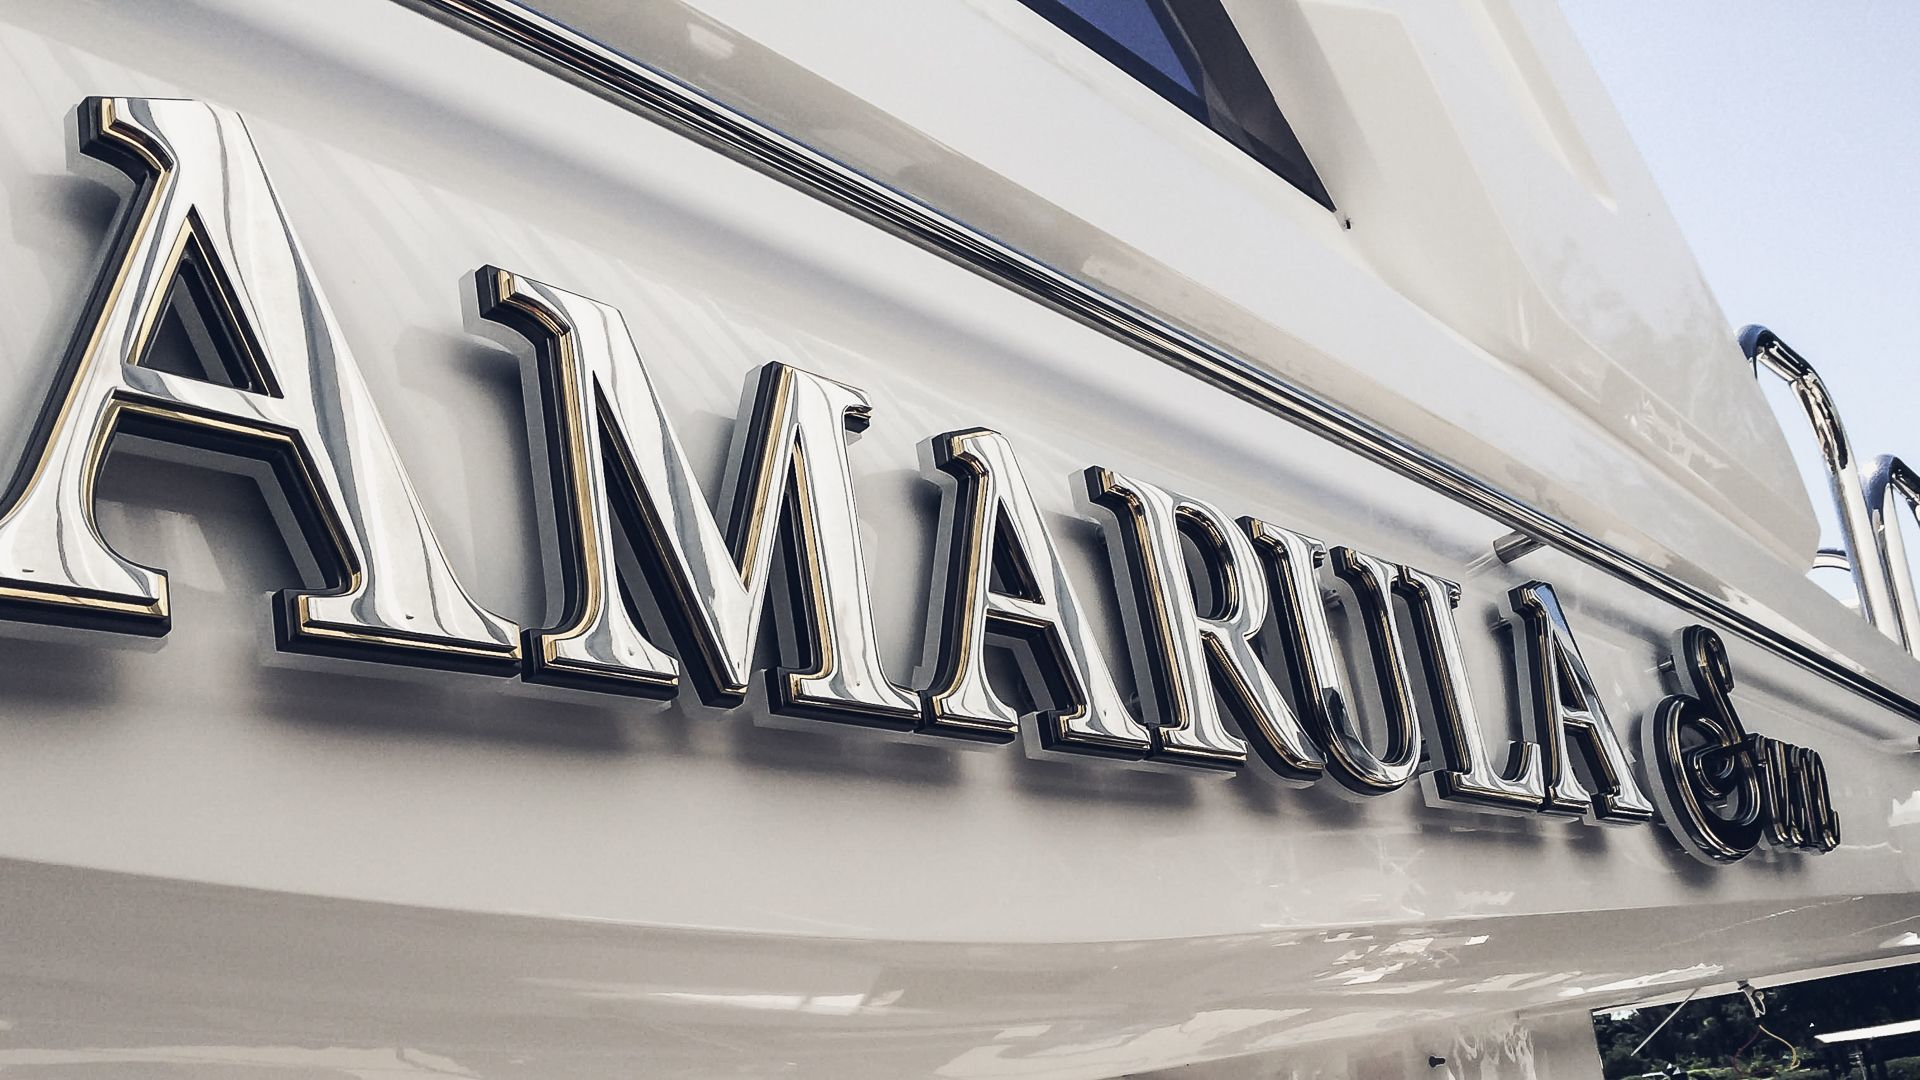 Yacht sign illuminated letters by yachtsign